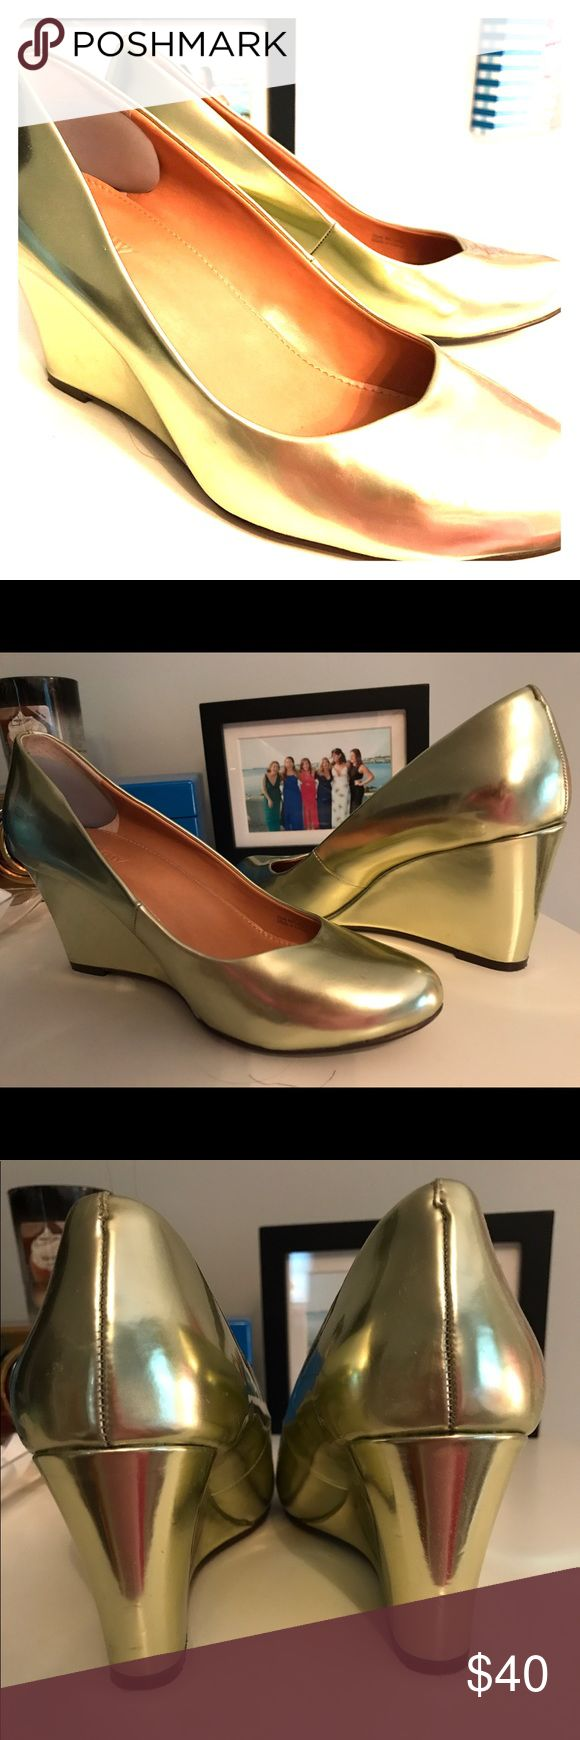 JCrew Factory Gold Wedges👡 Genuine Leather•Size 7 These fun leather wedges add a pop of shine to any outfit this summer! Hardly ever worn, these shoes are in excellent condition. As always they are a true classic JCrew design that compliment every outfit for any occasion! Two inch heel, Size 7 J. Crew Factory Shoes Wedges